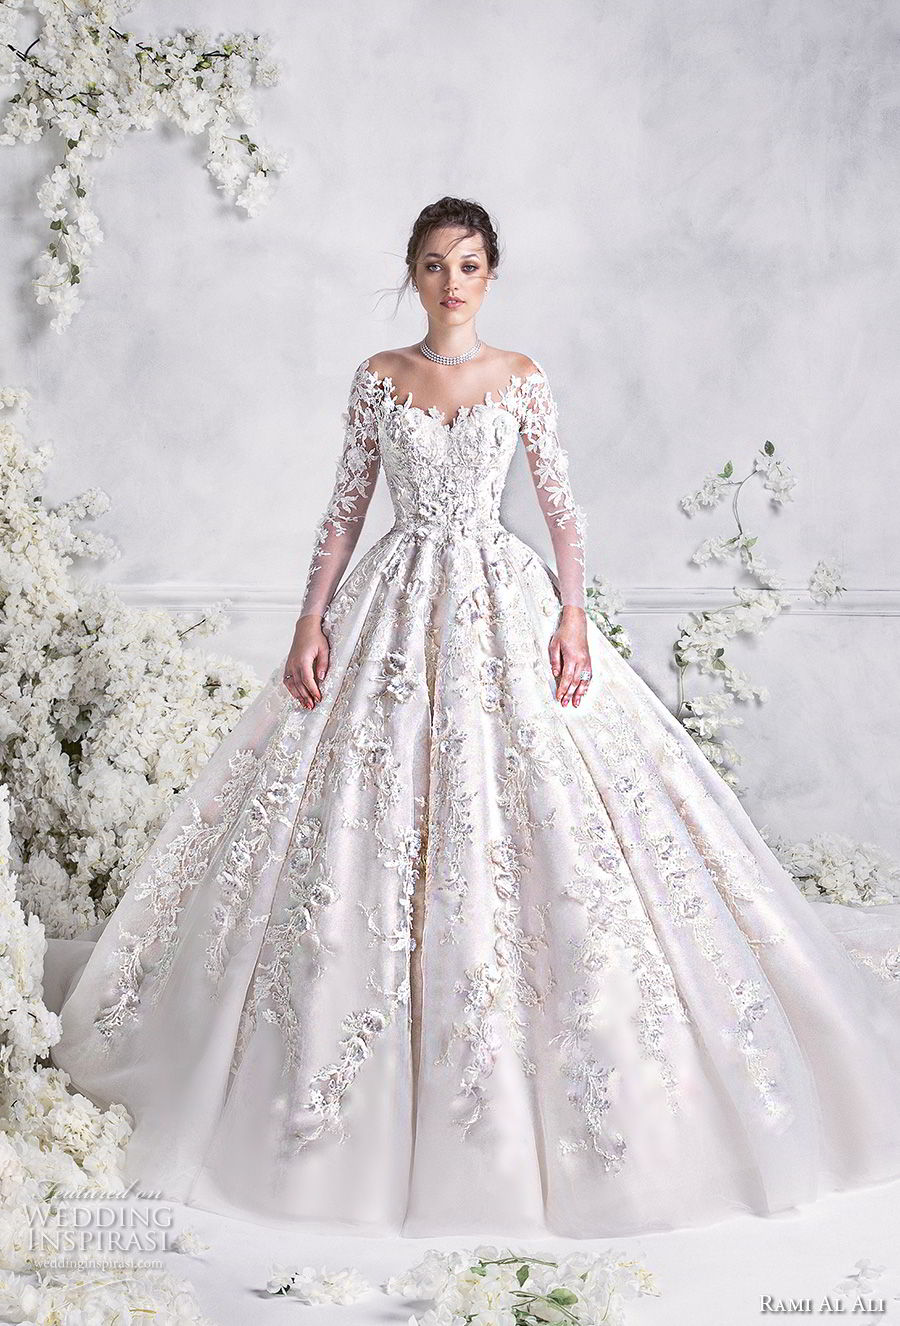 rami al ali 2018 bridal long sleeves off the shoulder sweetheart neckline full embellishment princess ball gown a  line wedding dress royal train (1) mv